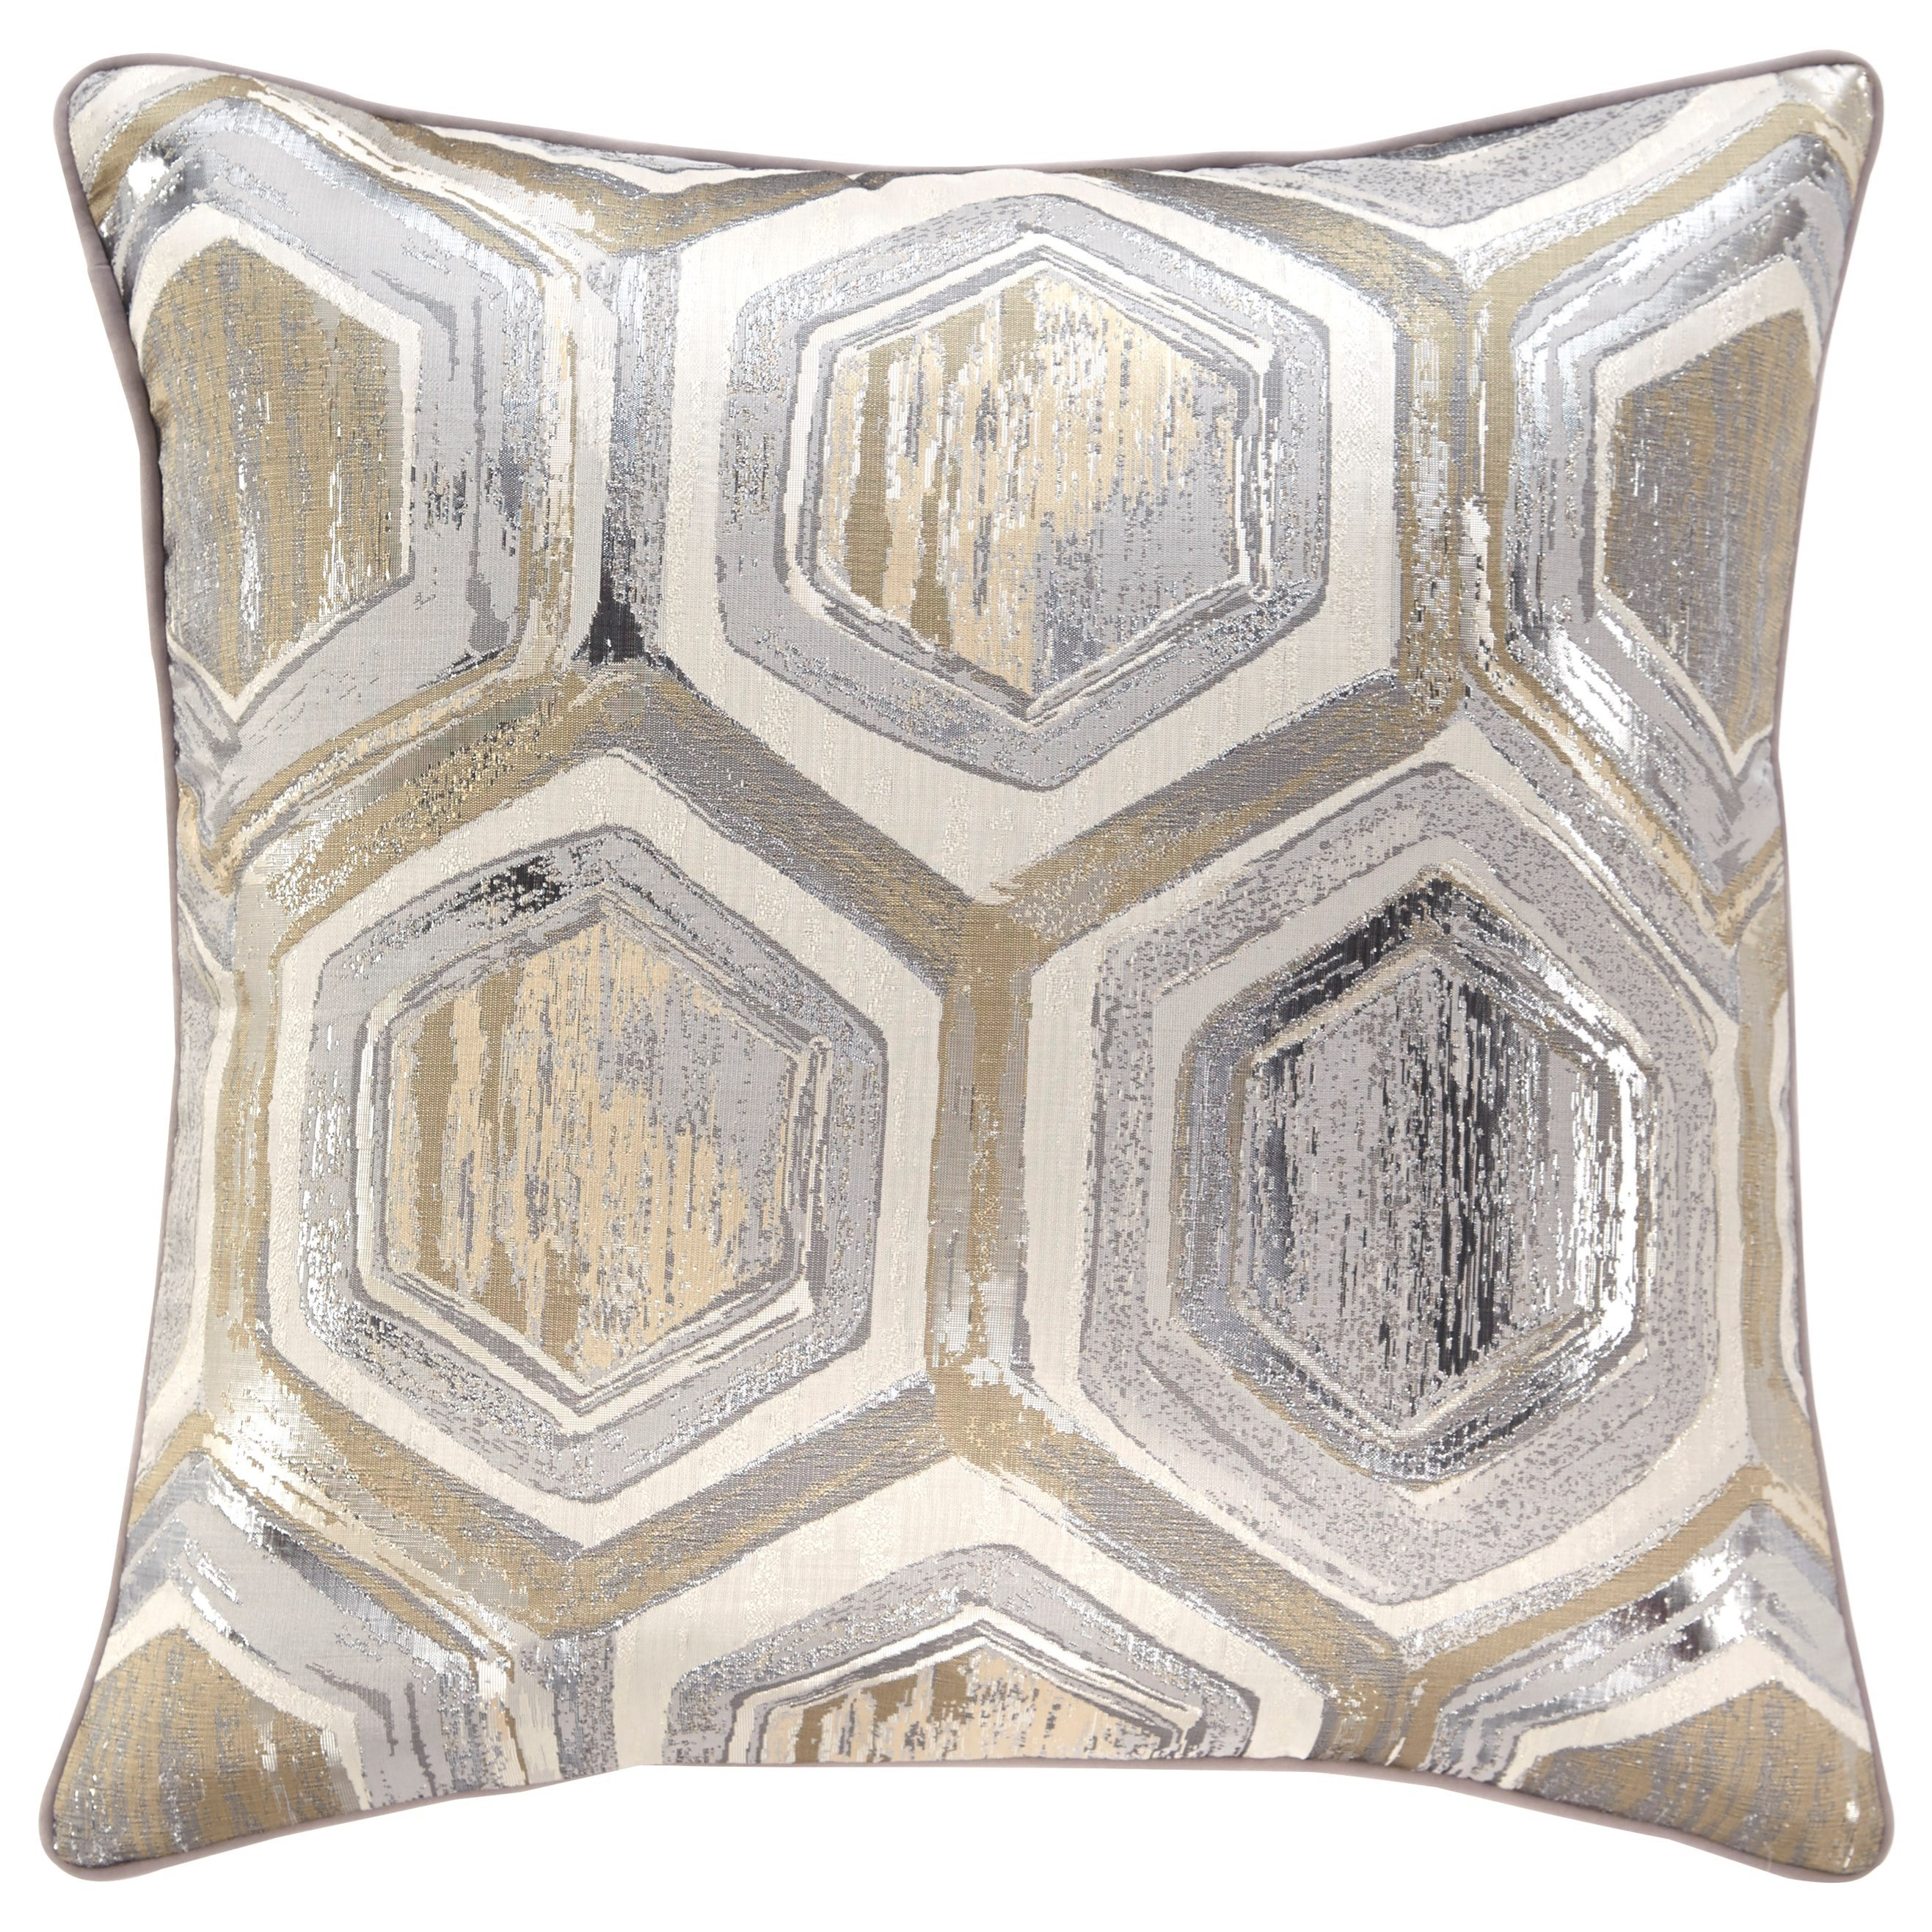 Signature Design by Ashley Pillows Meiling Metallic Pillow - Item Number: A1000480P